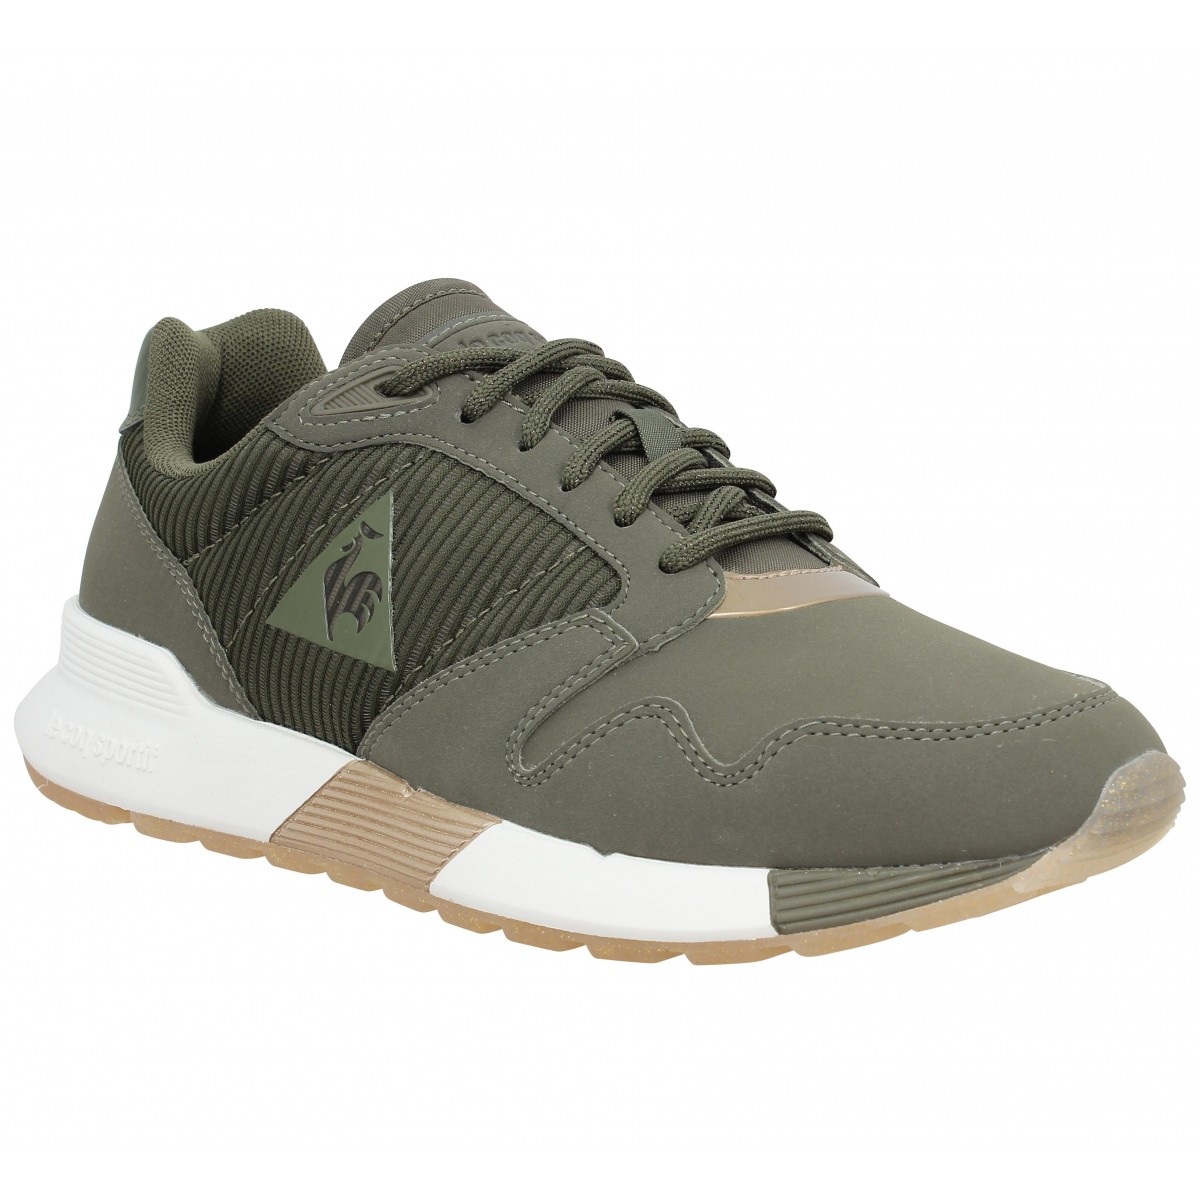 3268fd7934c3 Baskets LE COQ SPORTIF Omega X Striped toile Femme Olive